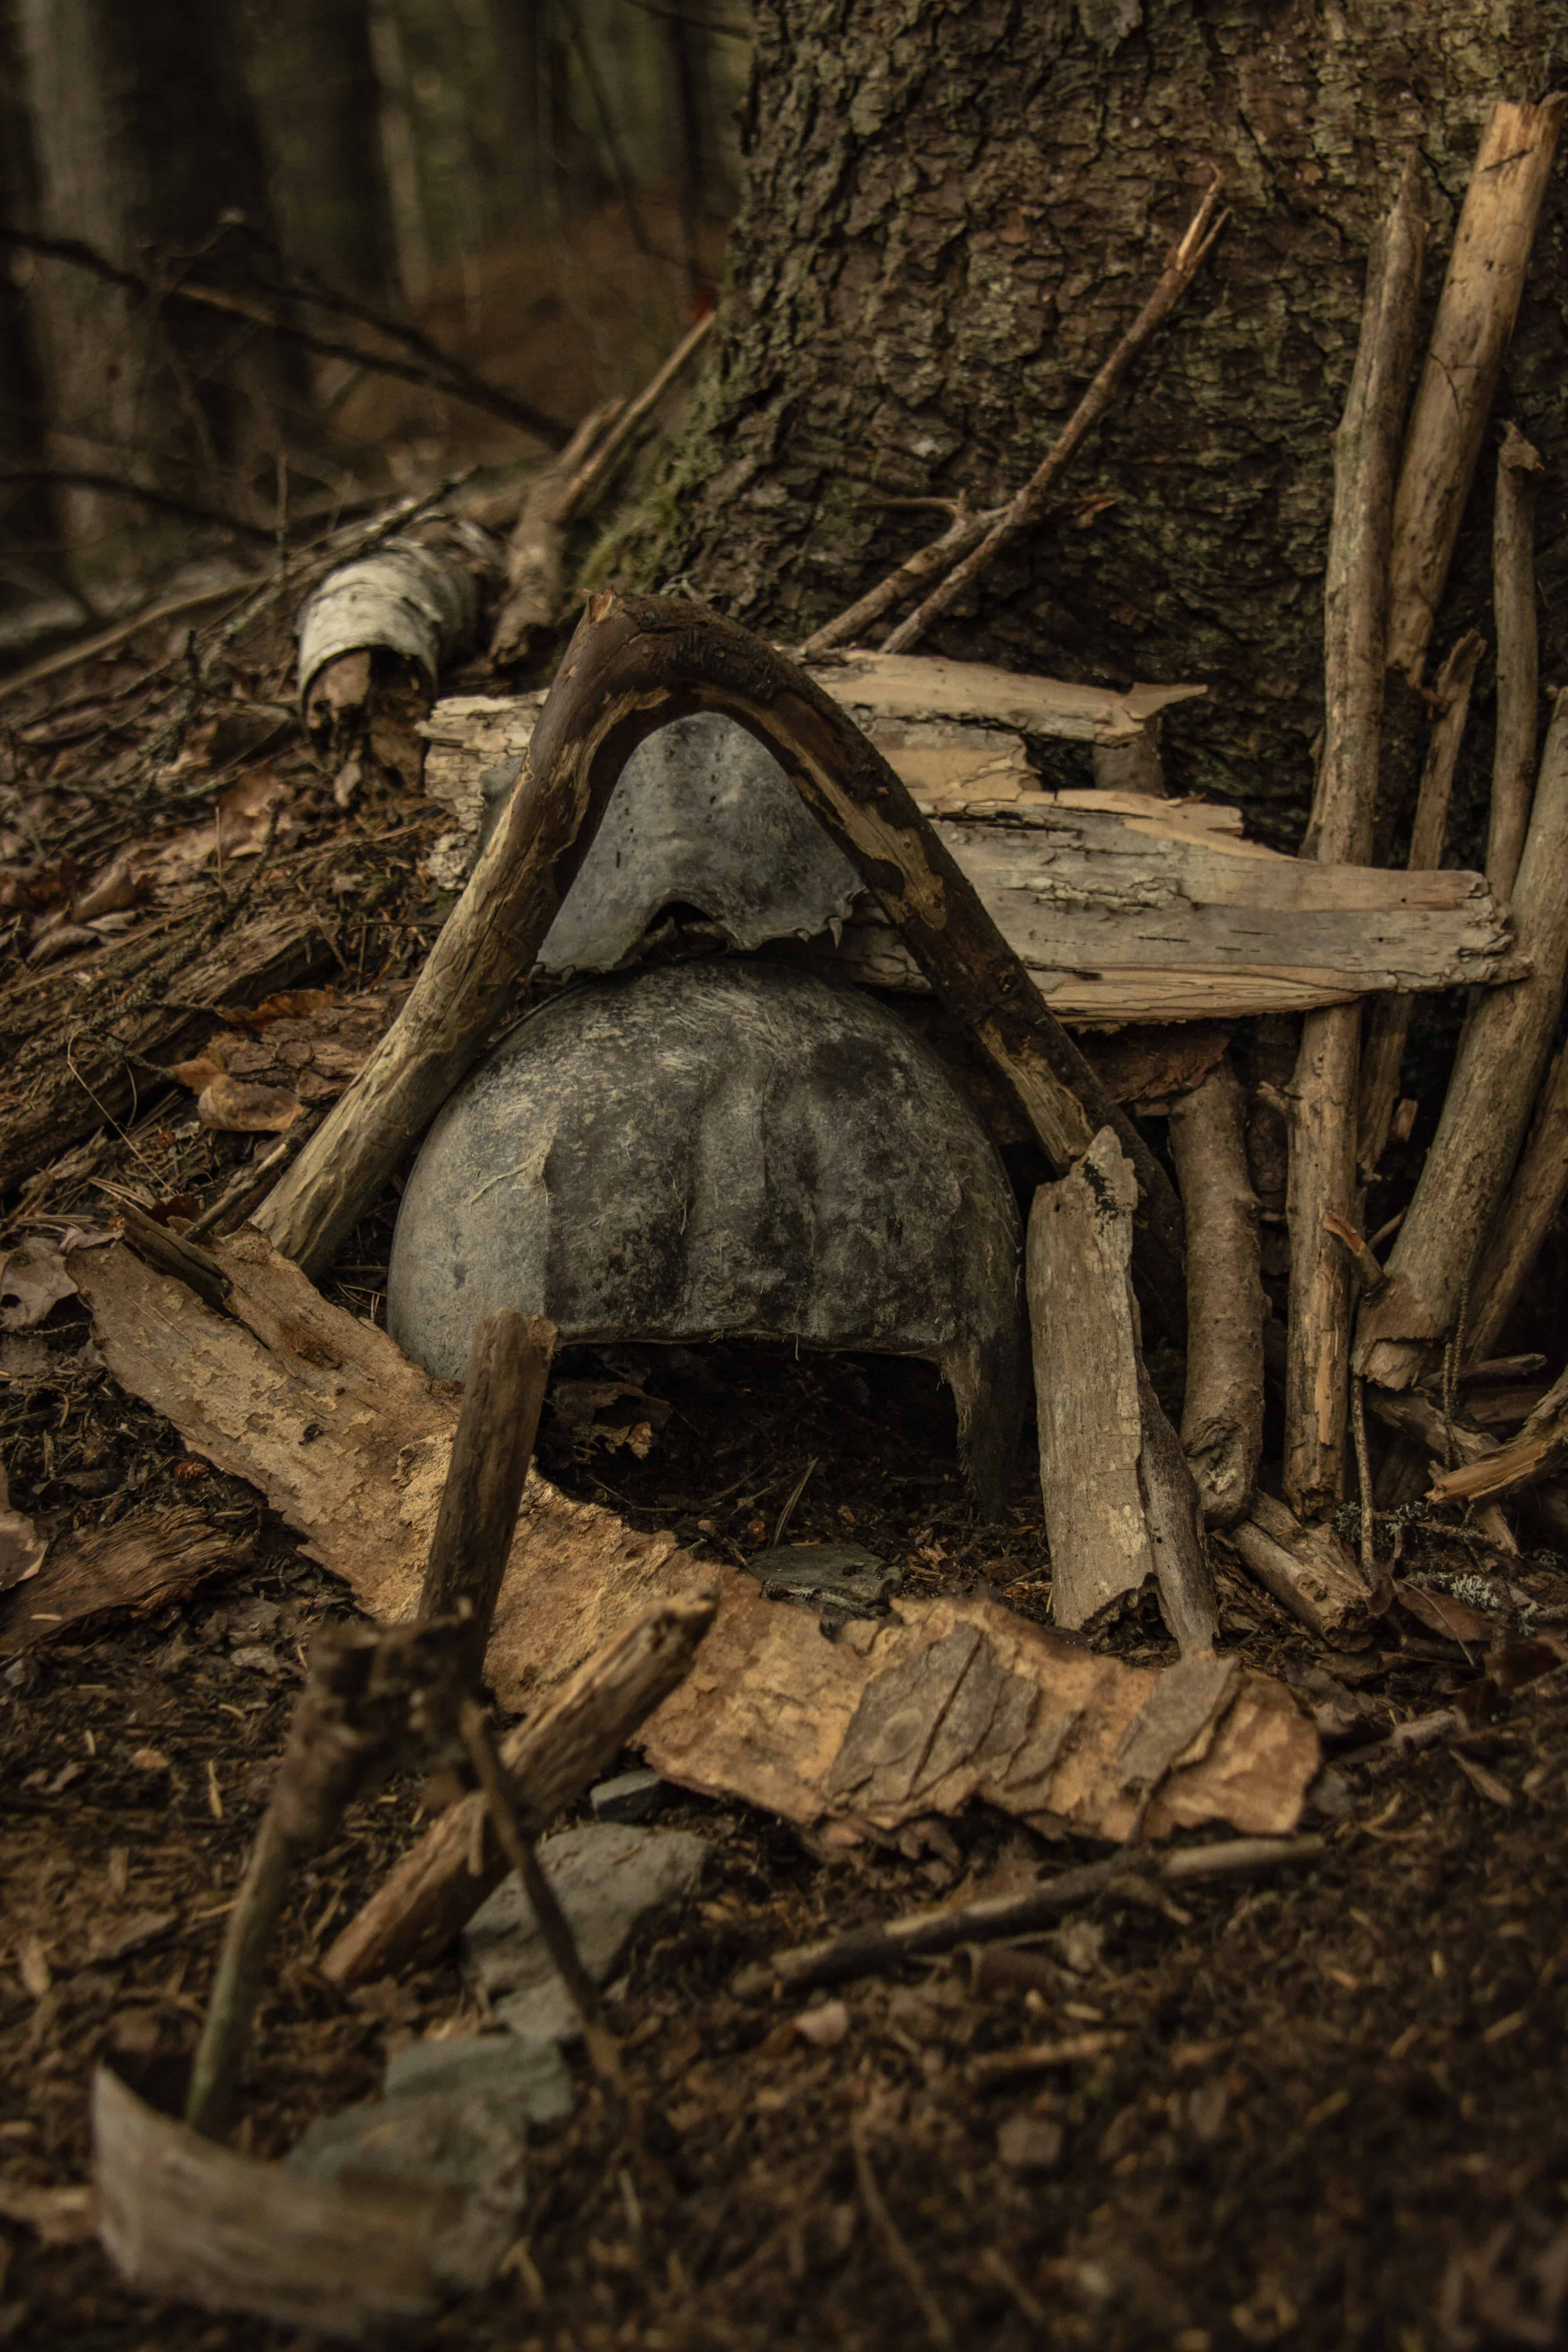 THE ELUSIVE MAINE FAIRY HOUSE